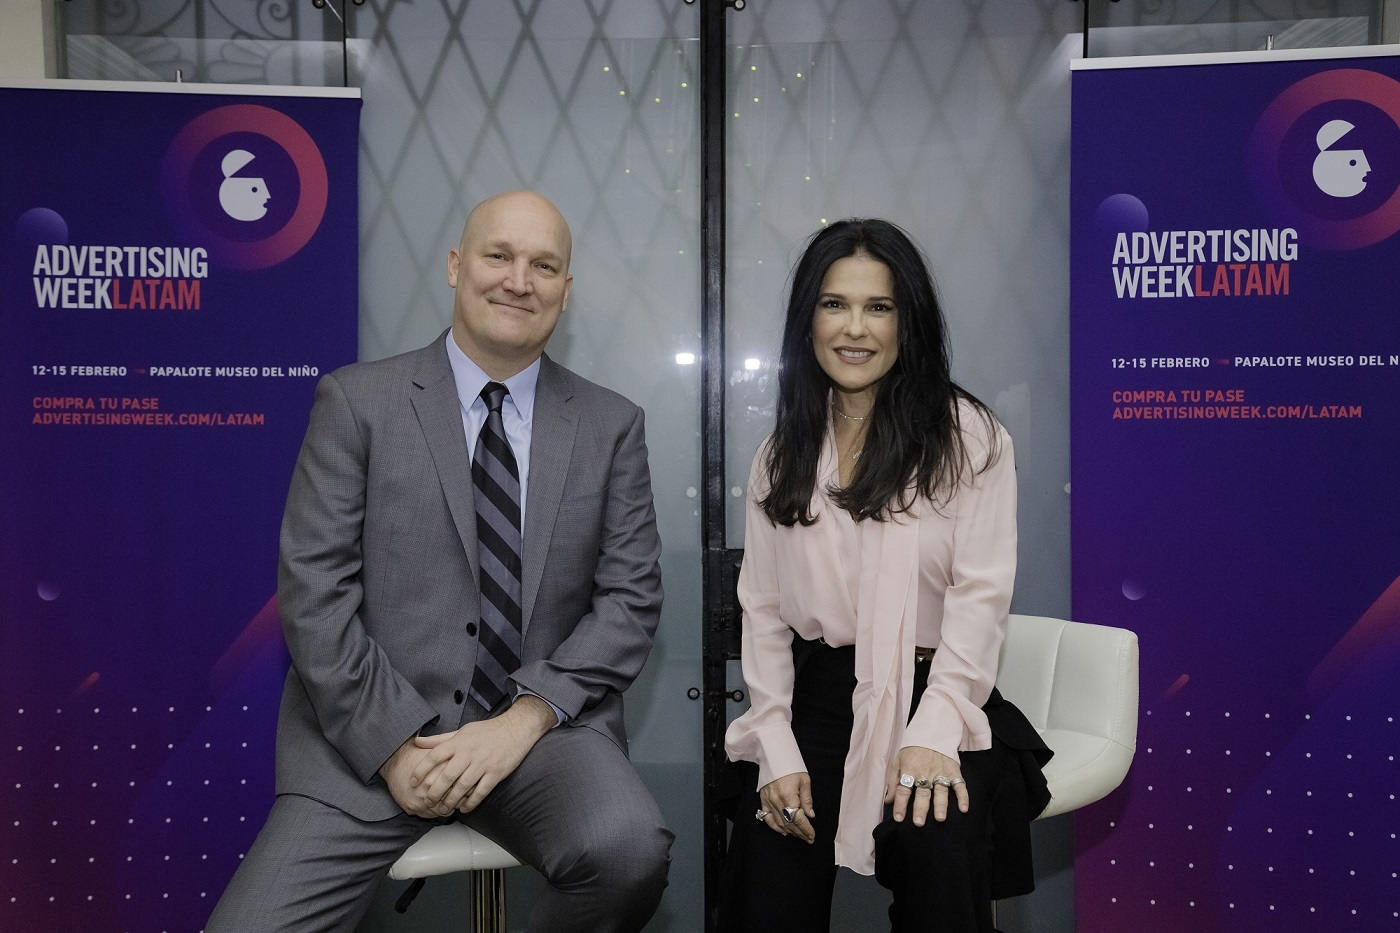 Advertising Week Latam